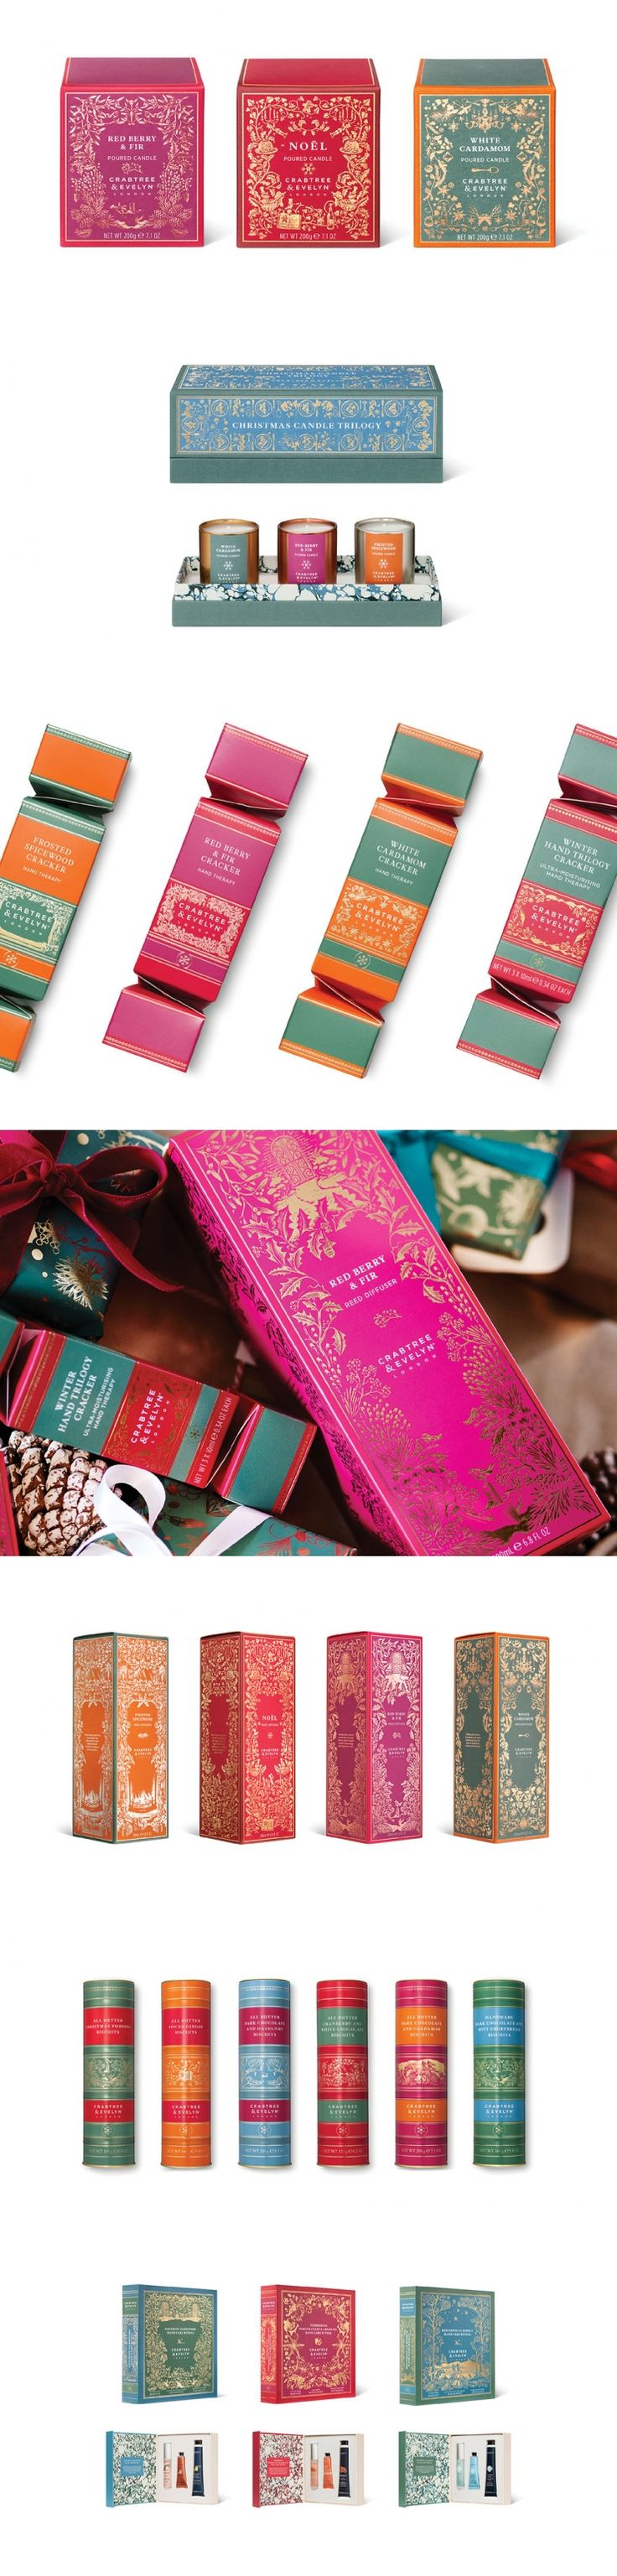 We're Swooning Over This Holiday Packaging From Crabtree & Evelyn — The Dieline | Packaging & Branding Design & Innovation News